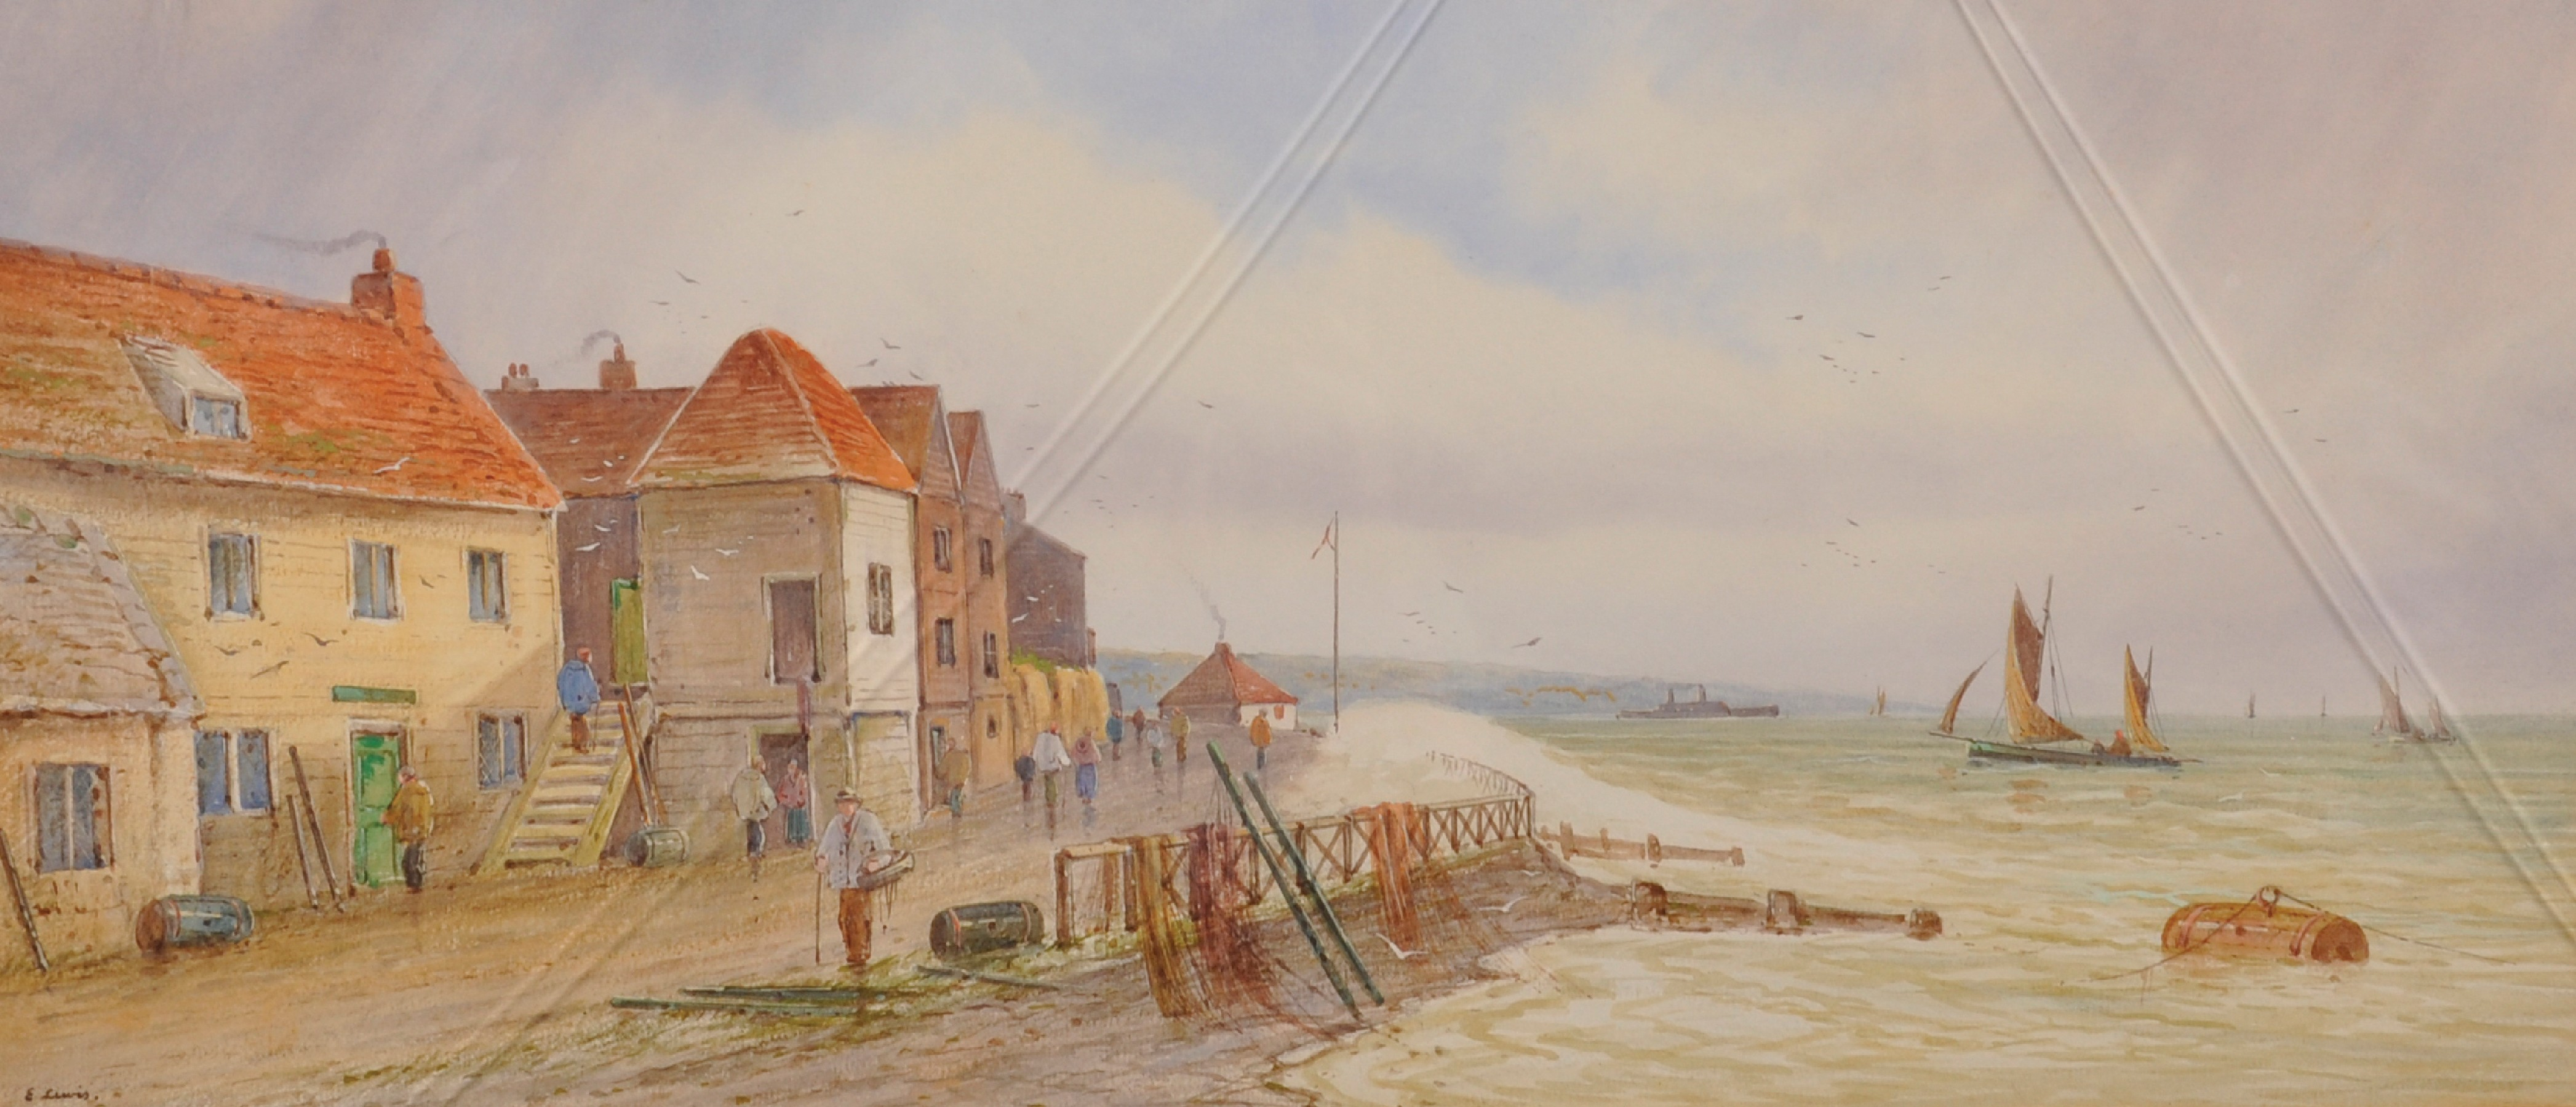 E... Lewis (19th - 20th Century) British. A Coastal Scene with Shipping, and Figures by Houses, - Image 2 of 7